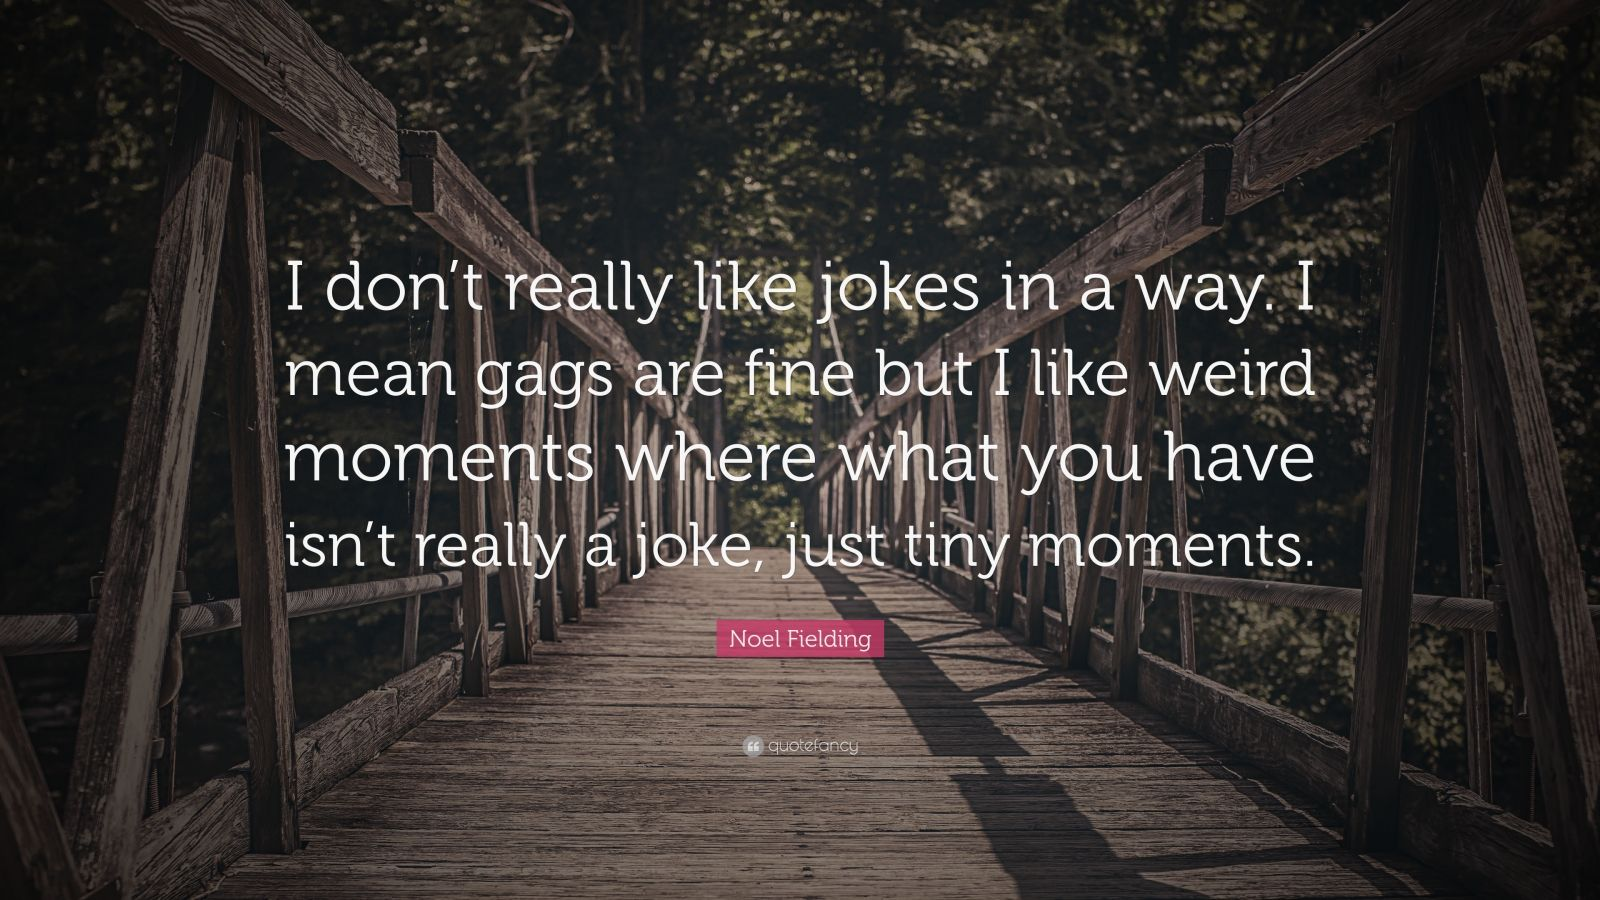 """Noel Fielding Quote: """"I don't really like jokes in a way. I mean gags are fine but I like weird moments where what you have isn't really a joke, just tiny moments."""""""